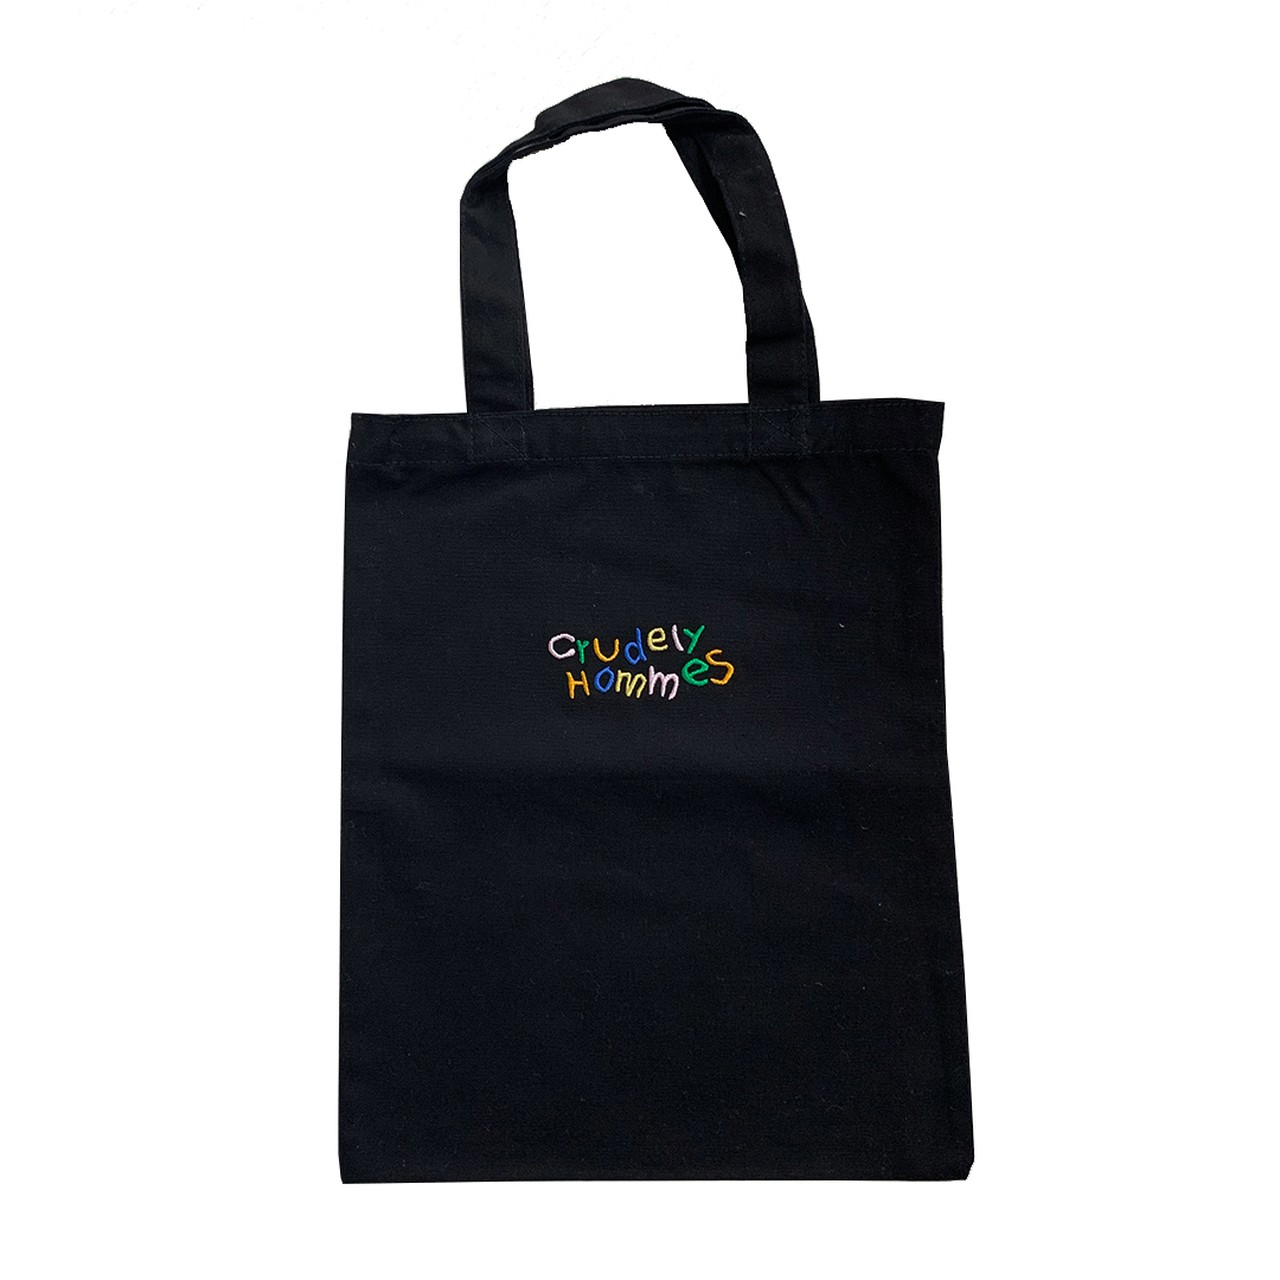 【Crudely Hommes】Rainbow Embroidery Logo Canvas Mini Tote Bag